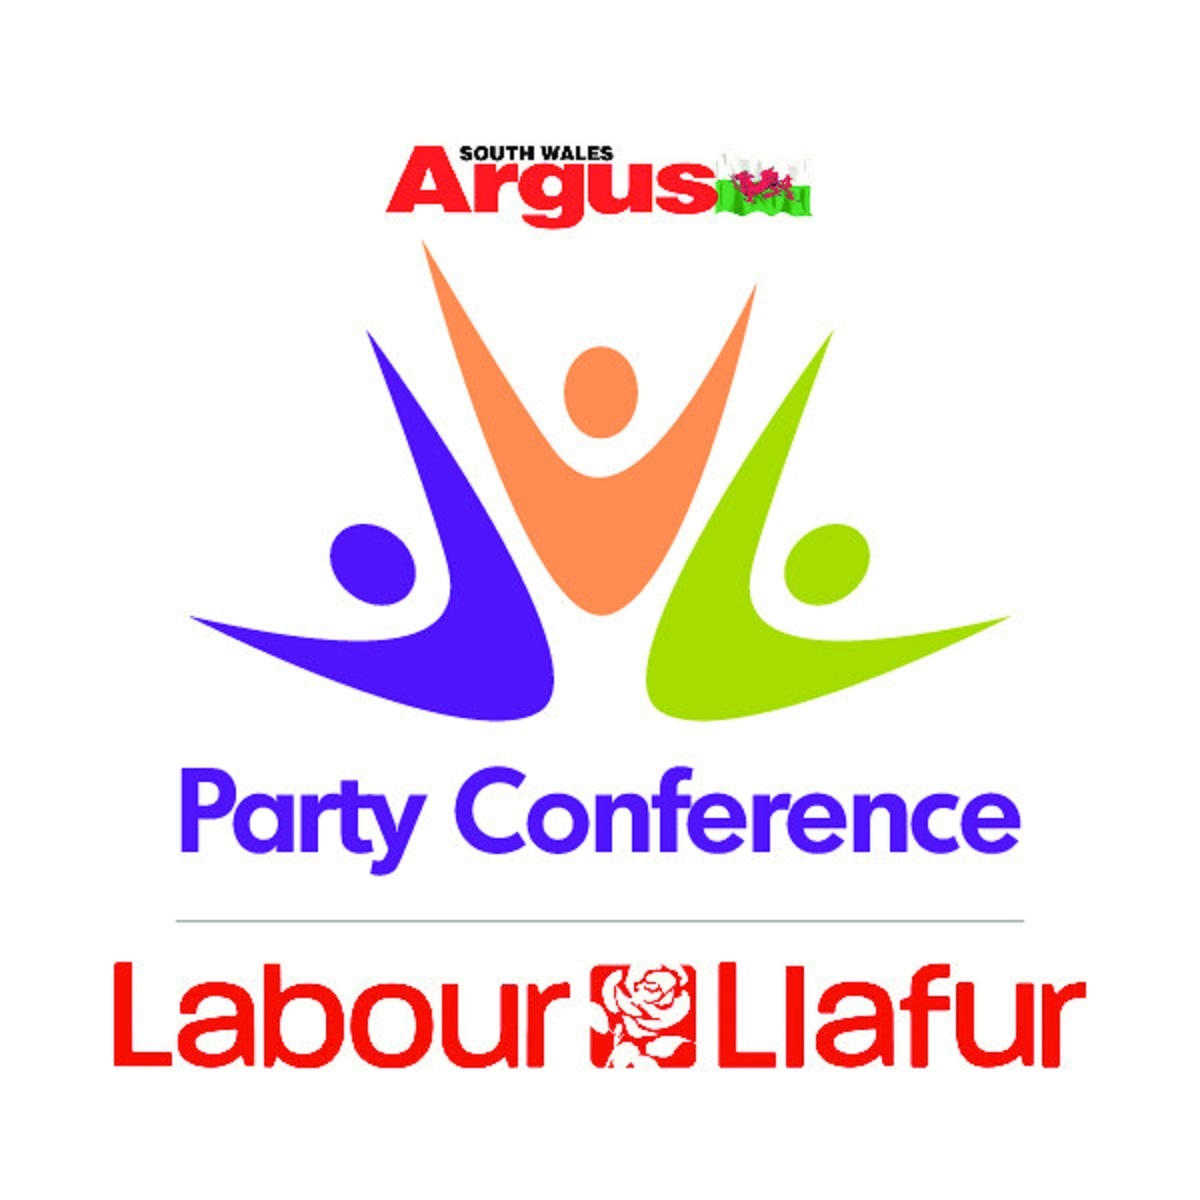 South Wales Argus Welsh Labour spring conference 2017 logo